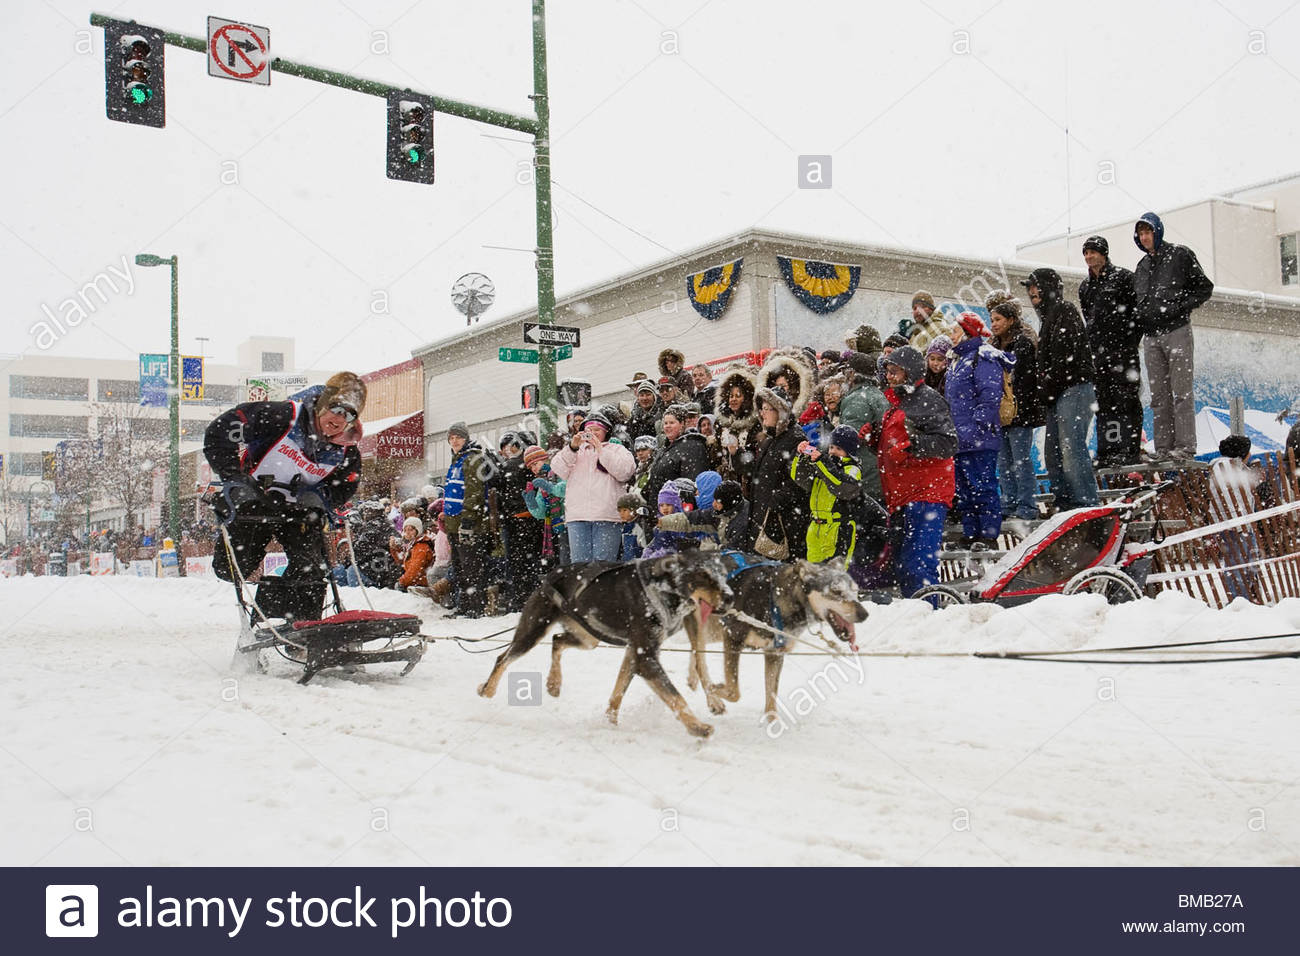 Alaska, Anchorage. Fur Rondezvous winter carnival. World Championship Dog Sled Races. Stock Photo